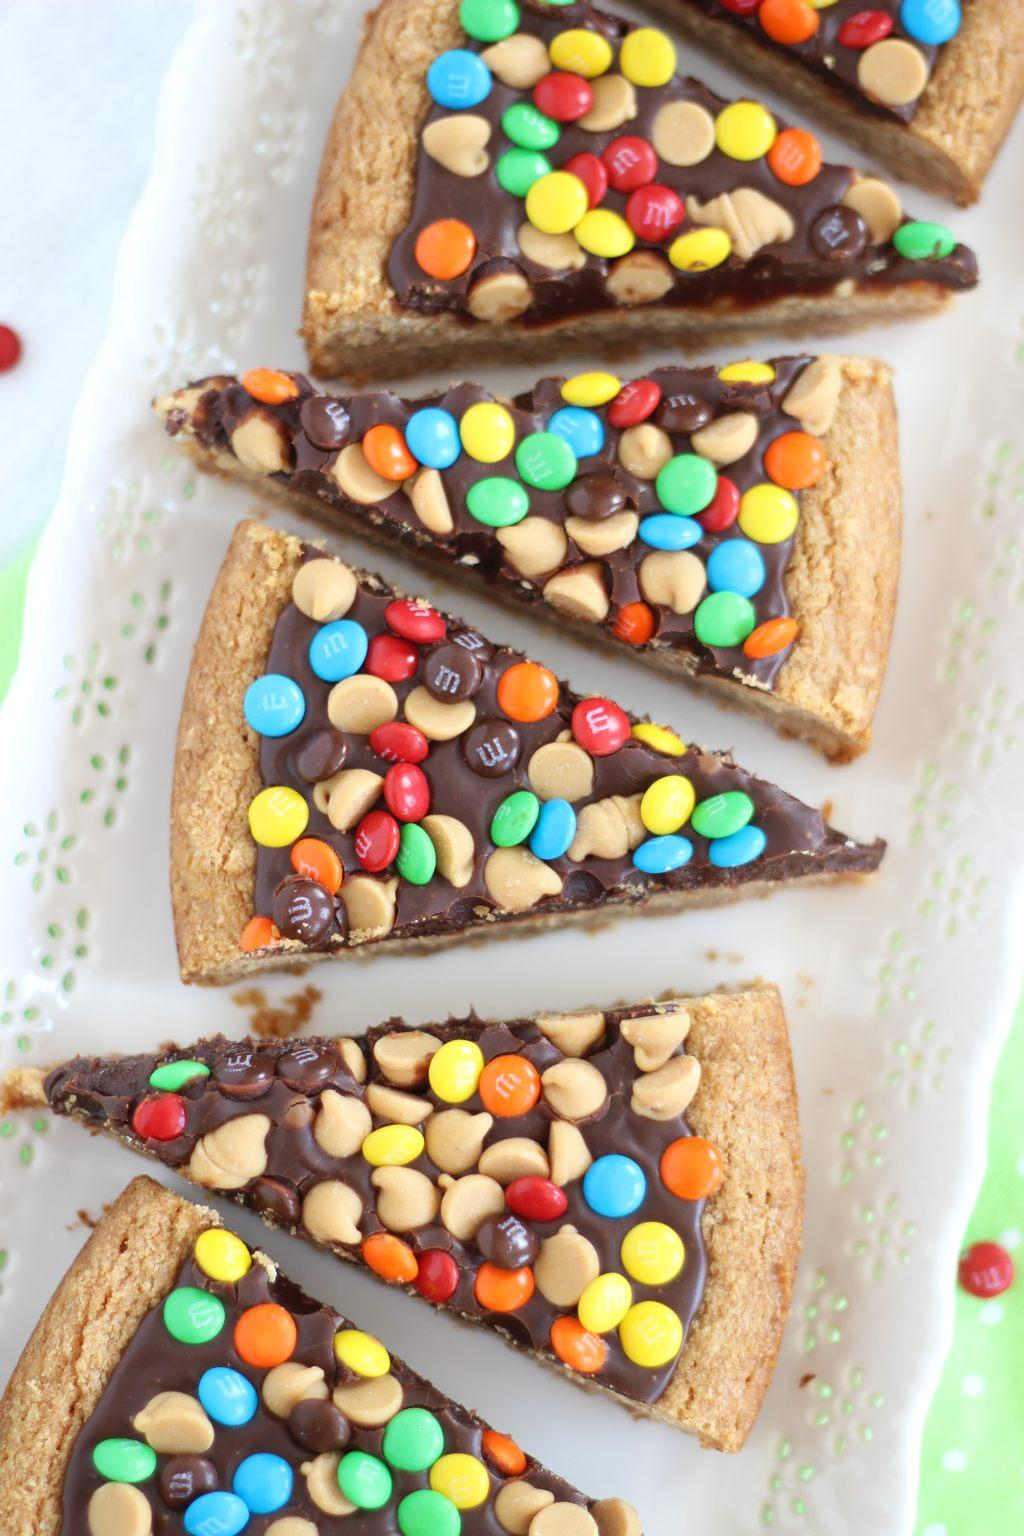 Chocolate Peanut Butter Cookie Pizza from this week's LP on Embellishmints.com